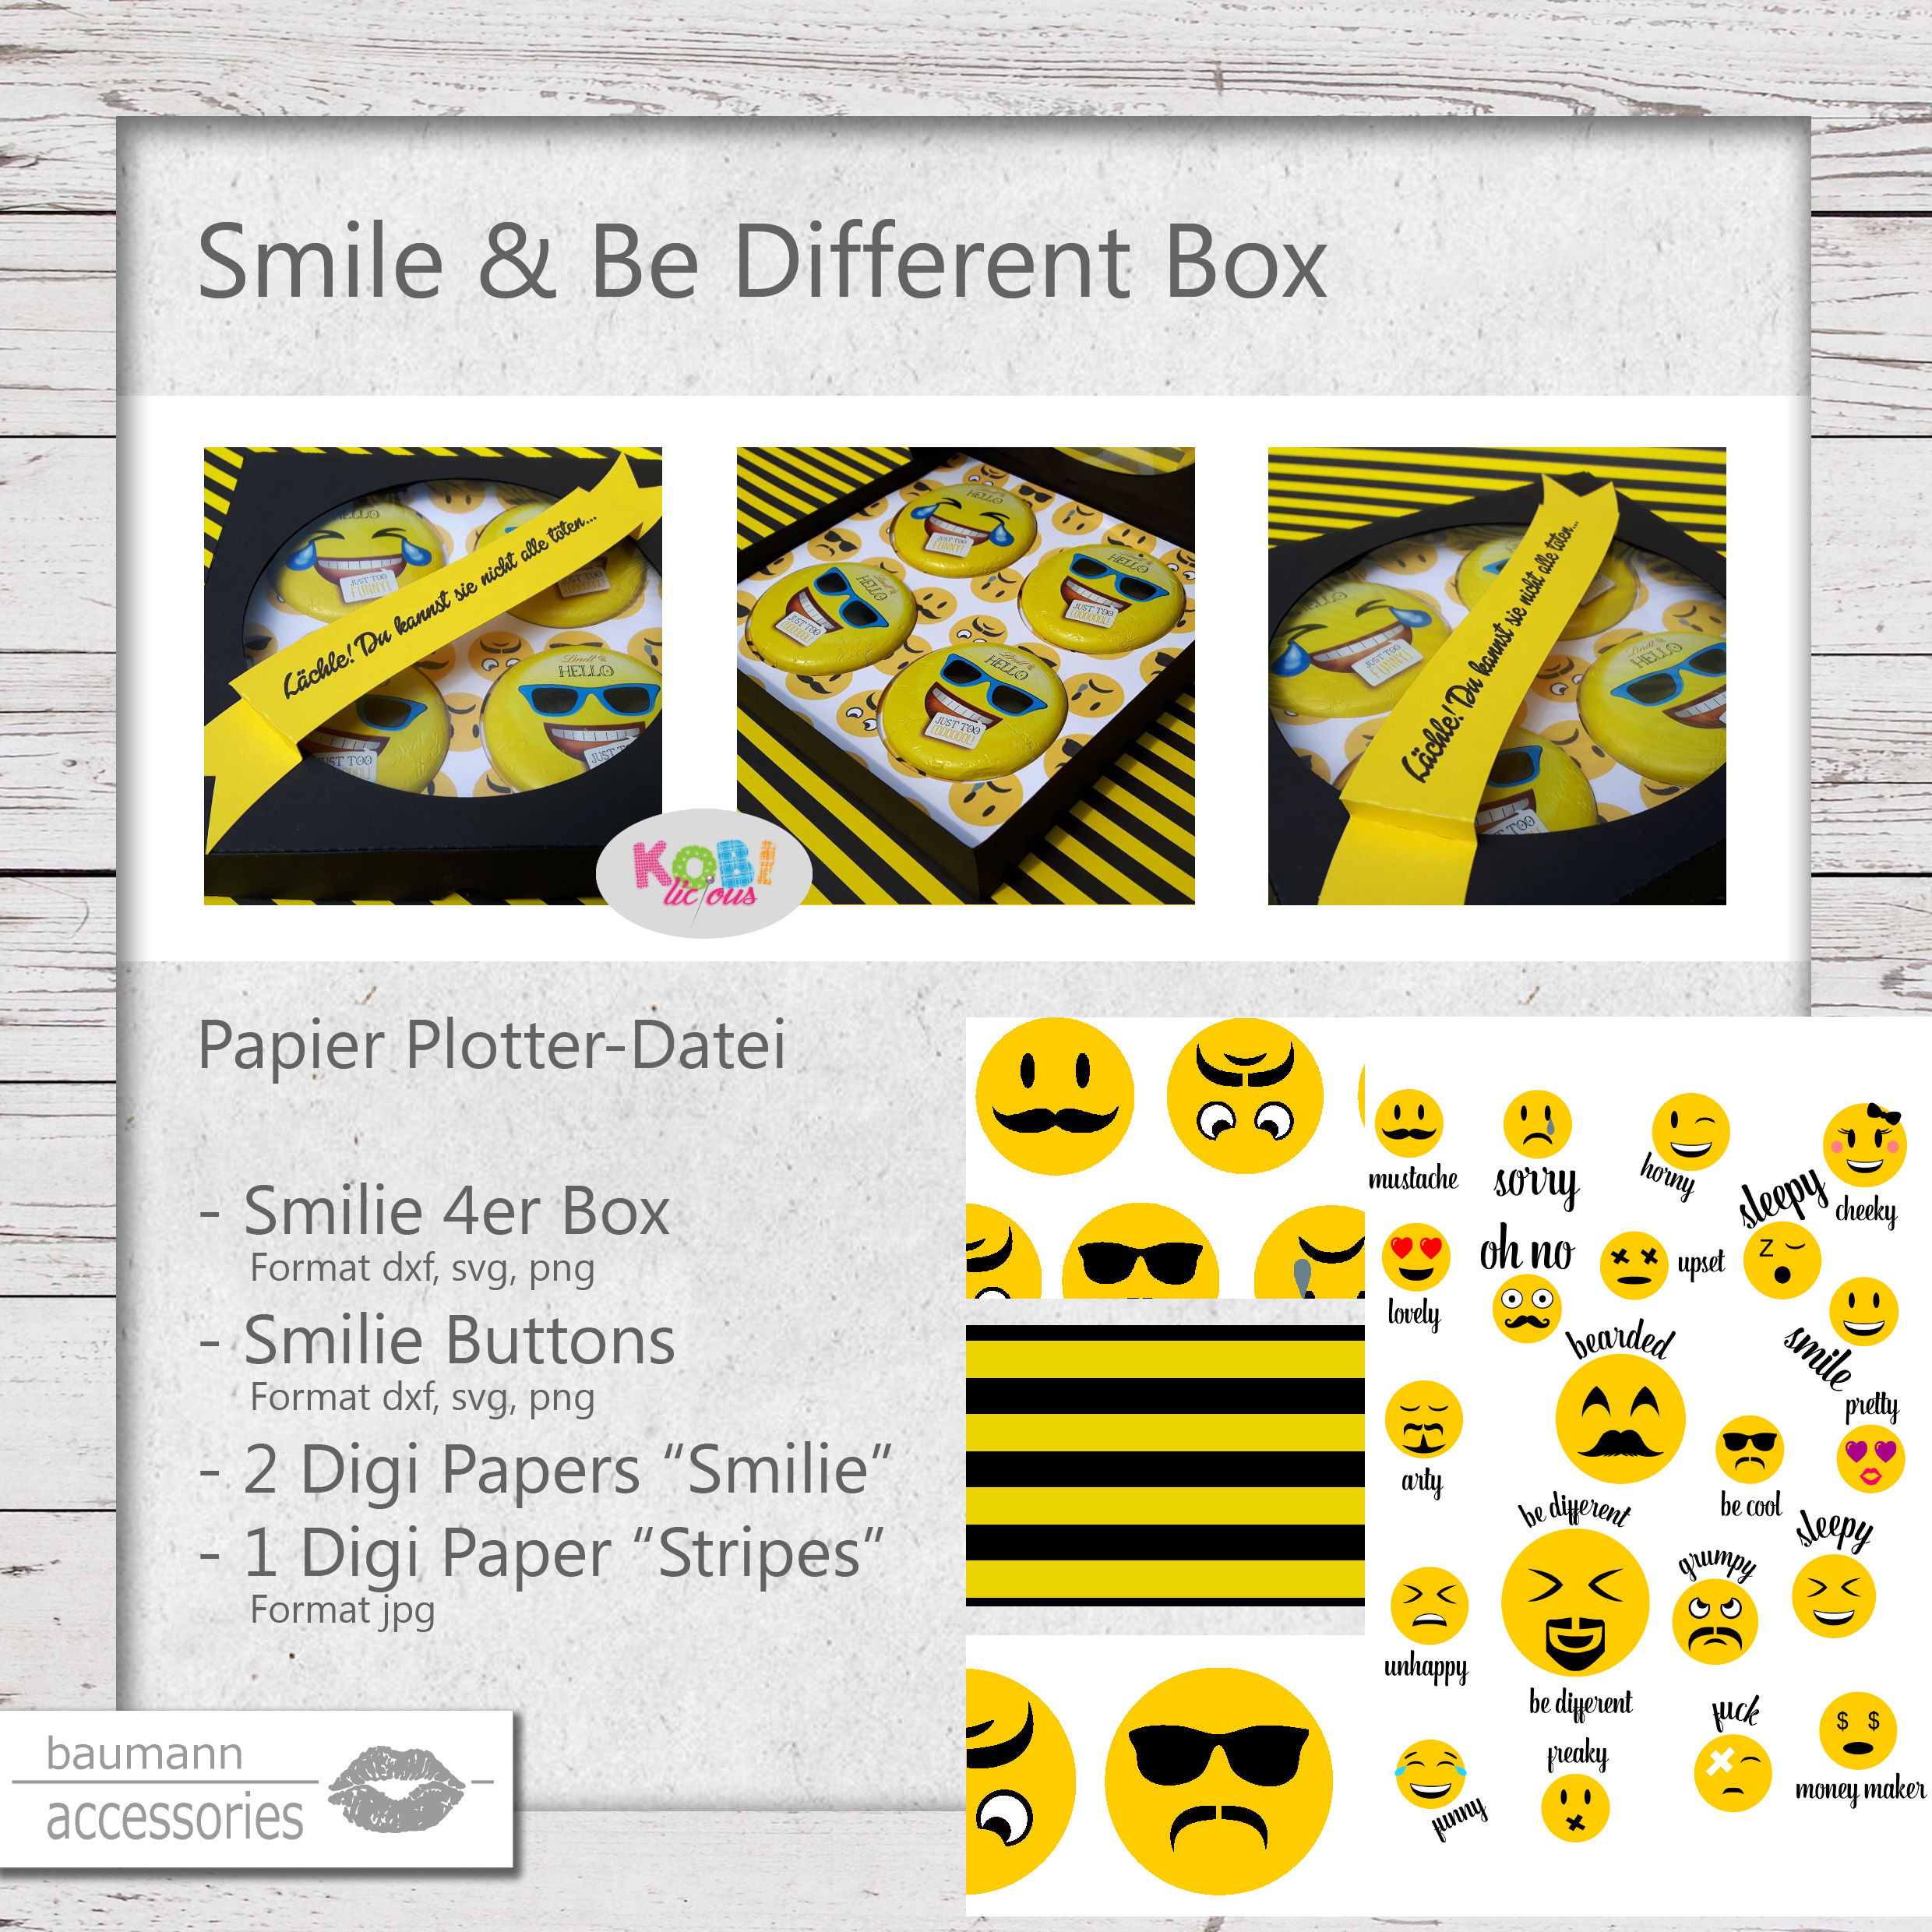 Produkt Smile & Be Different Box